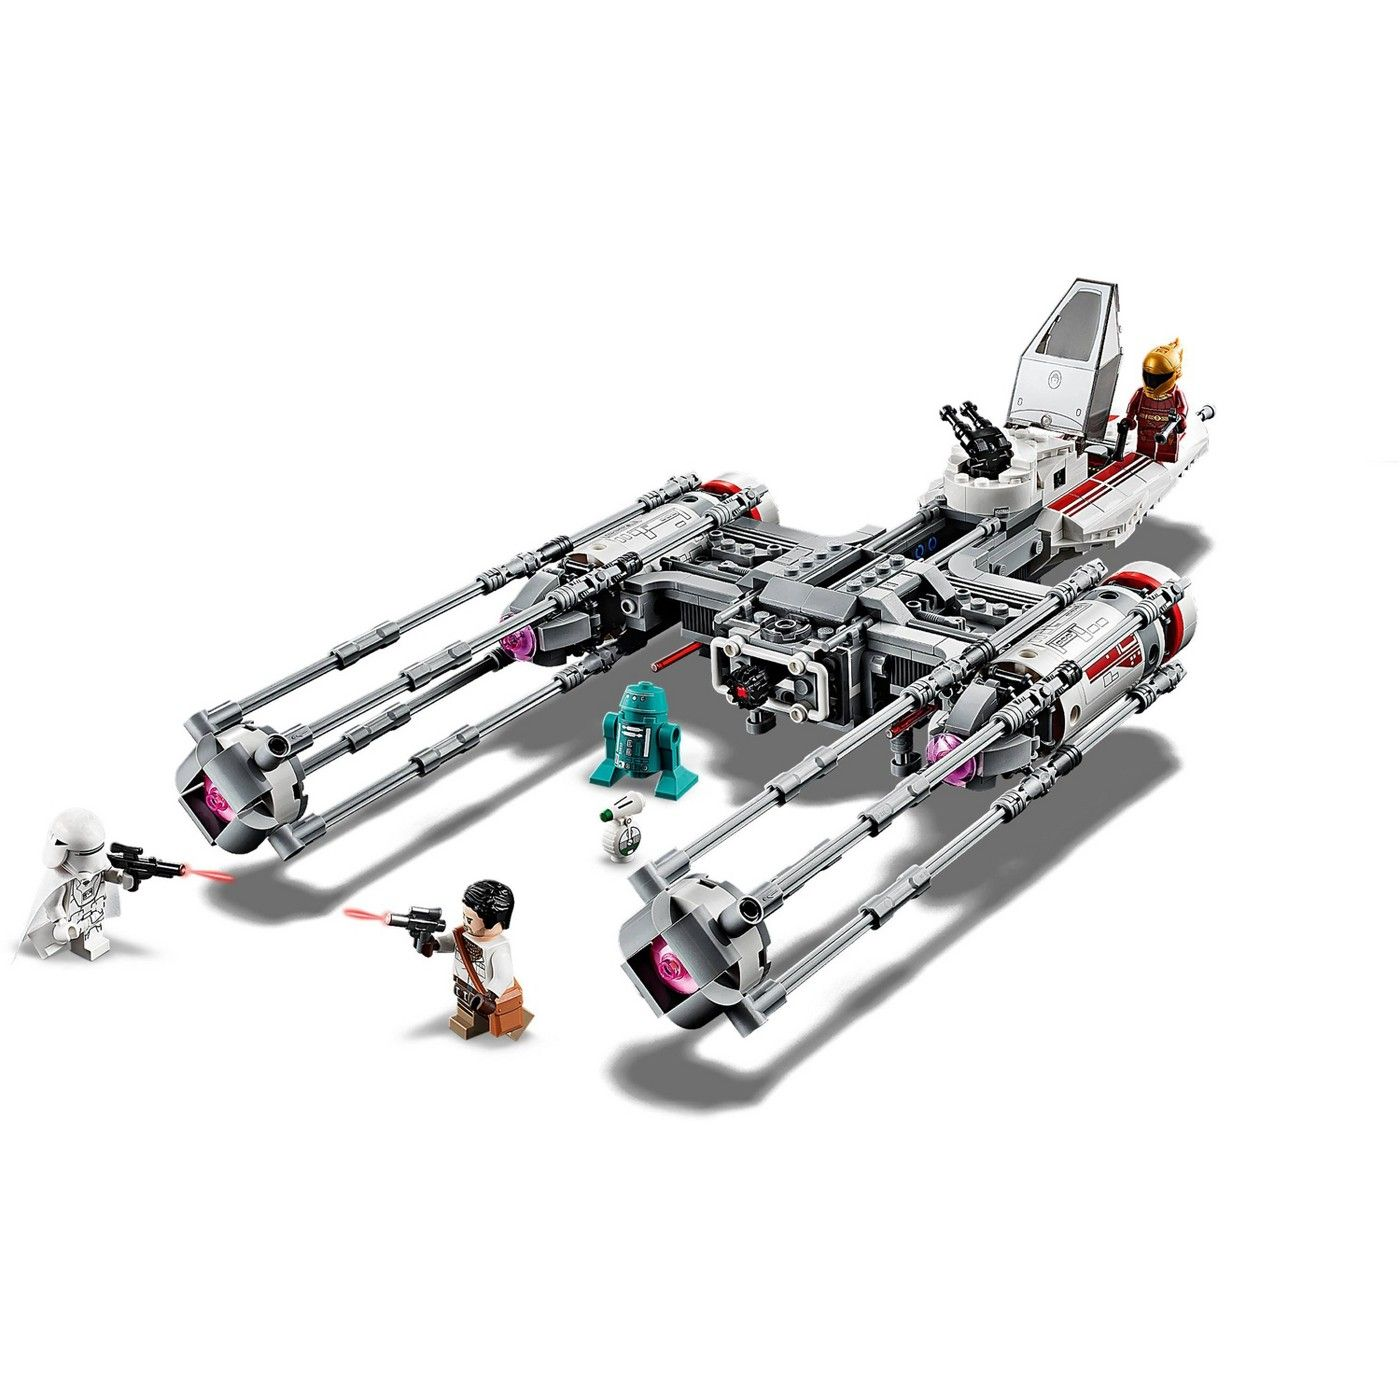 Lego Star Wars The Rise Of Skywalker Resistance Y Wing Starfighter 75249 New Advanced Collectible Starship Model Building Kit 578pc Affilia With Images Model Building Kits